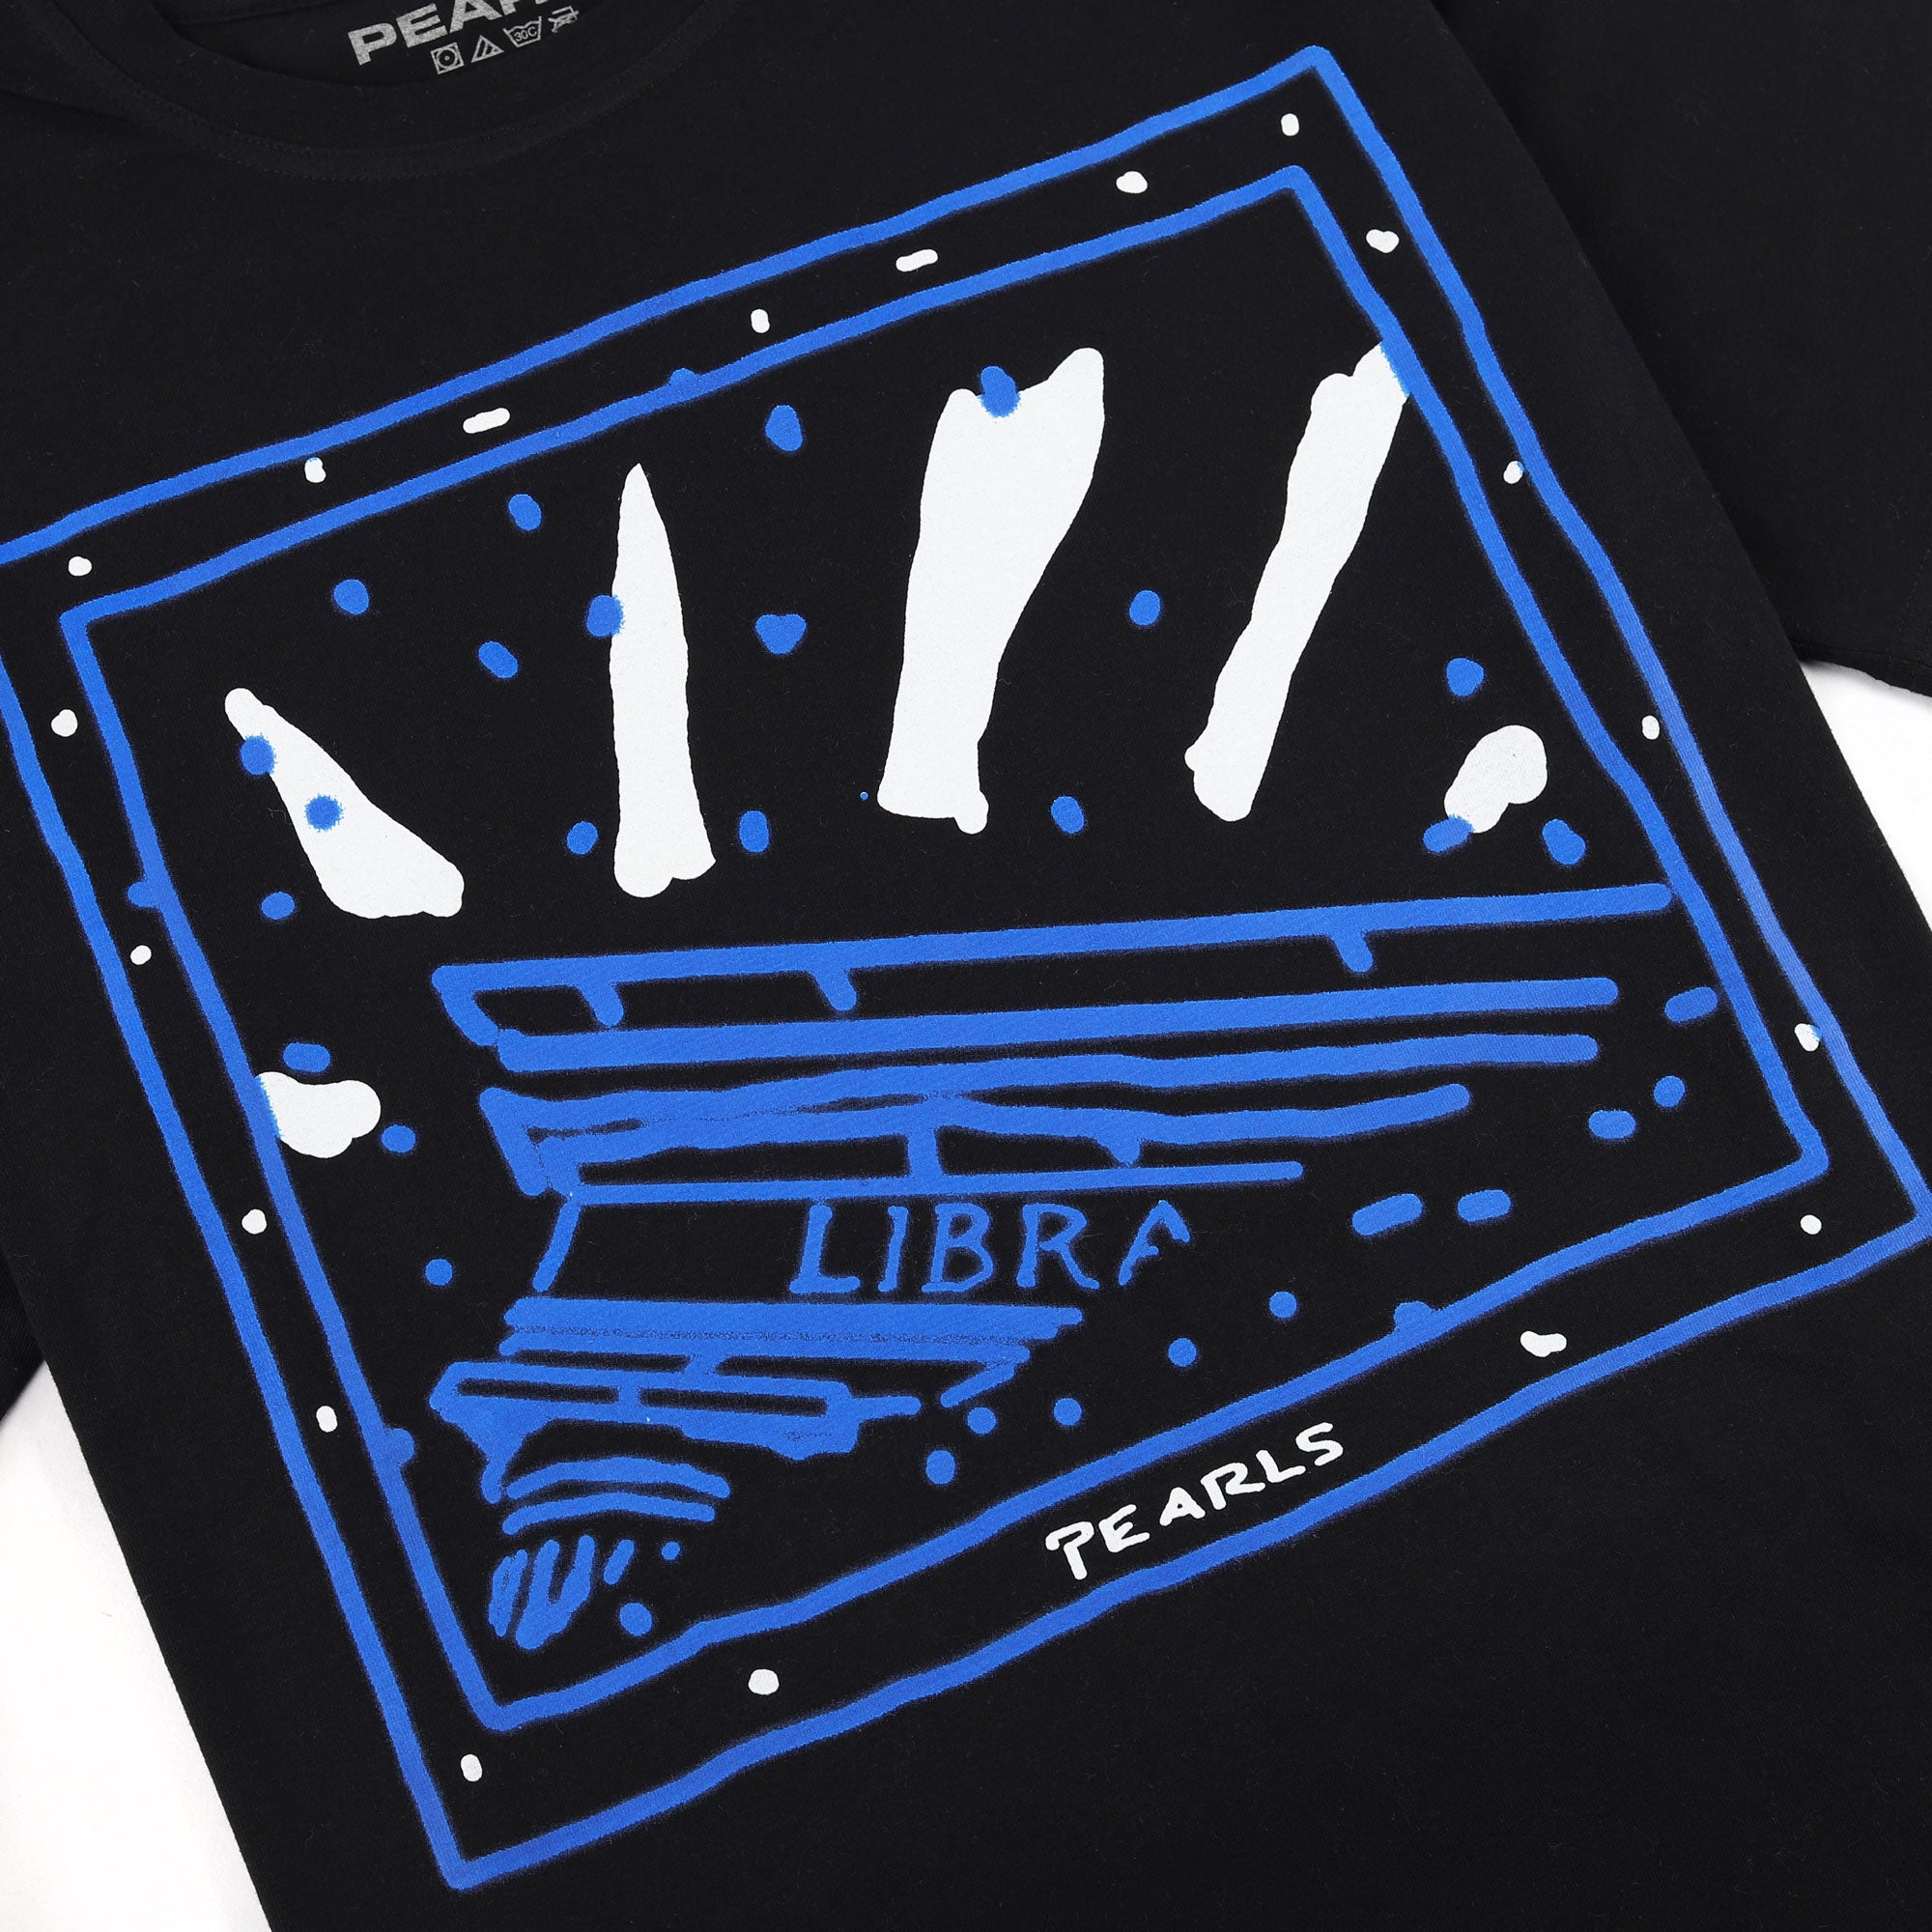 Pearls Library Tee Product Photo #2